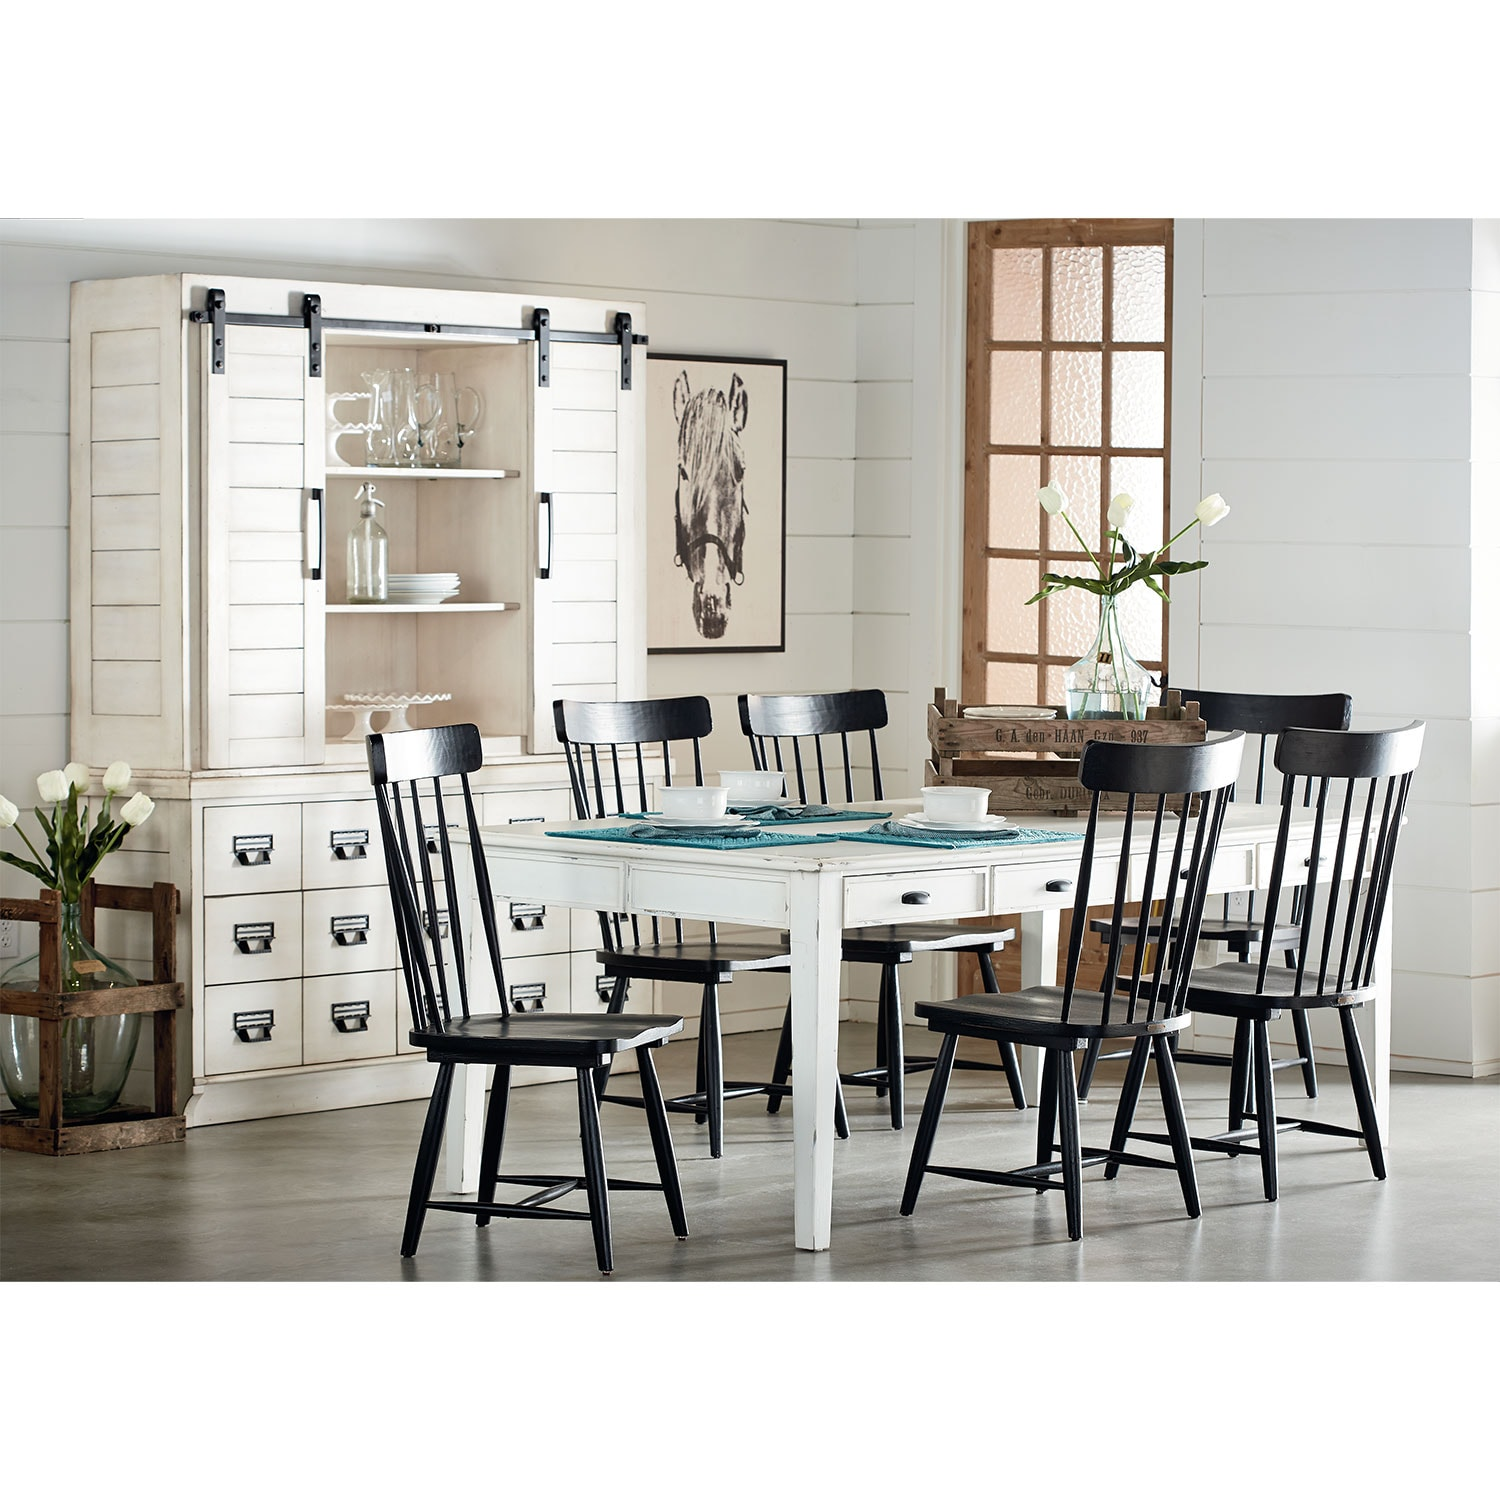 farmhouse keeping table six farmhouse spindle back chairs and two primitive windsor hoop chairs. Interior Design Ideas. Home Design Ideas